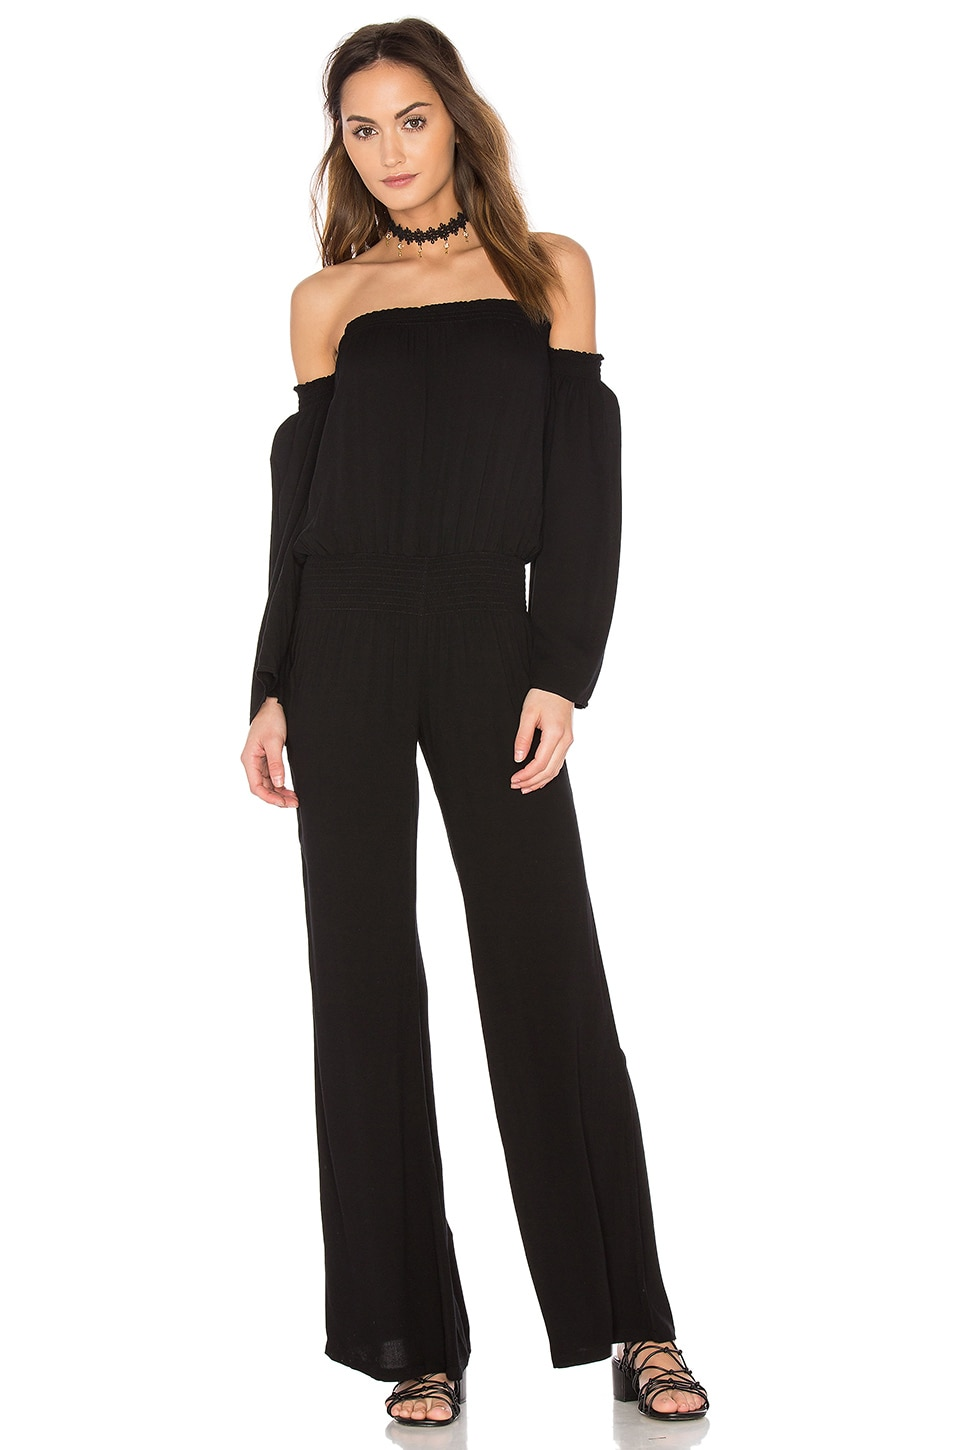 Estelle Jumpsuit by Young, Fabulous & Broke